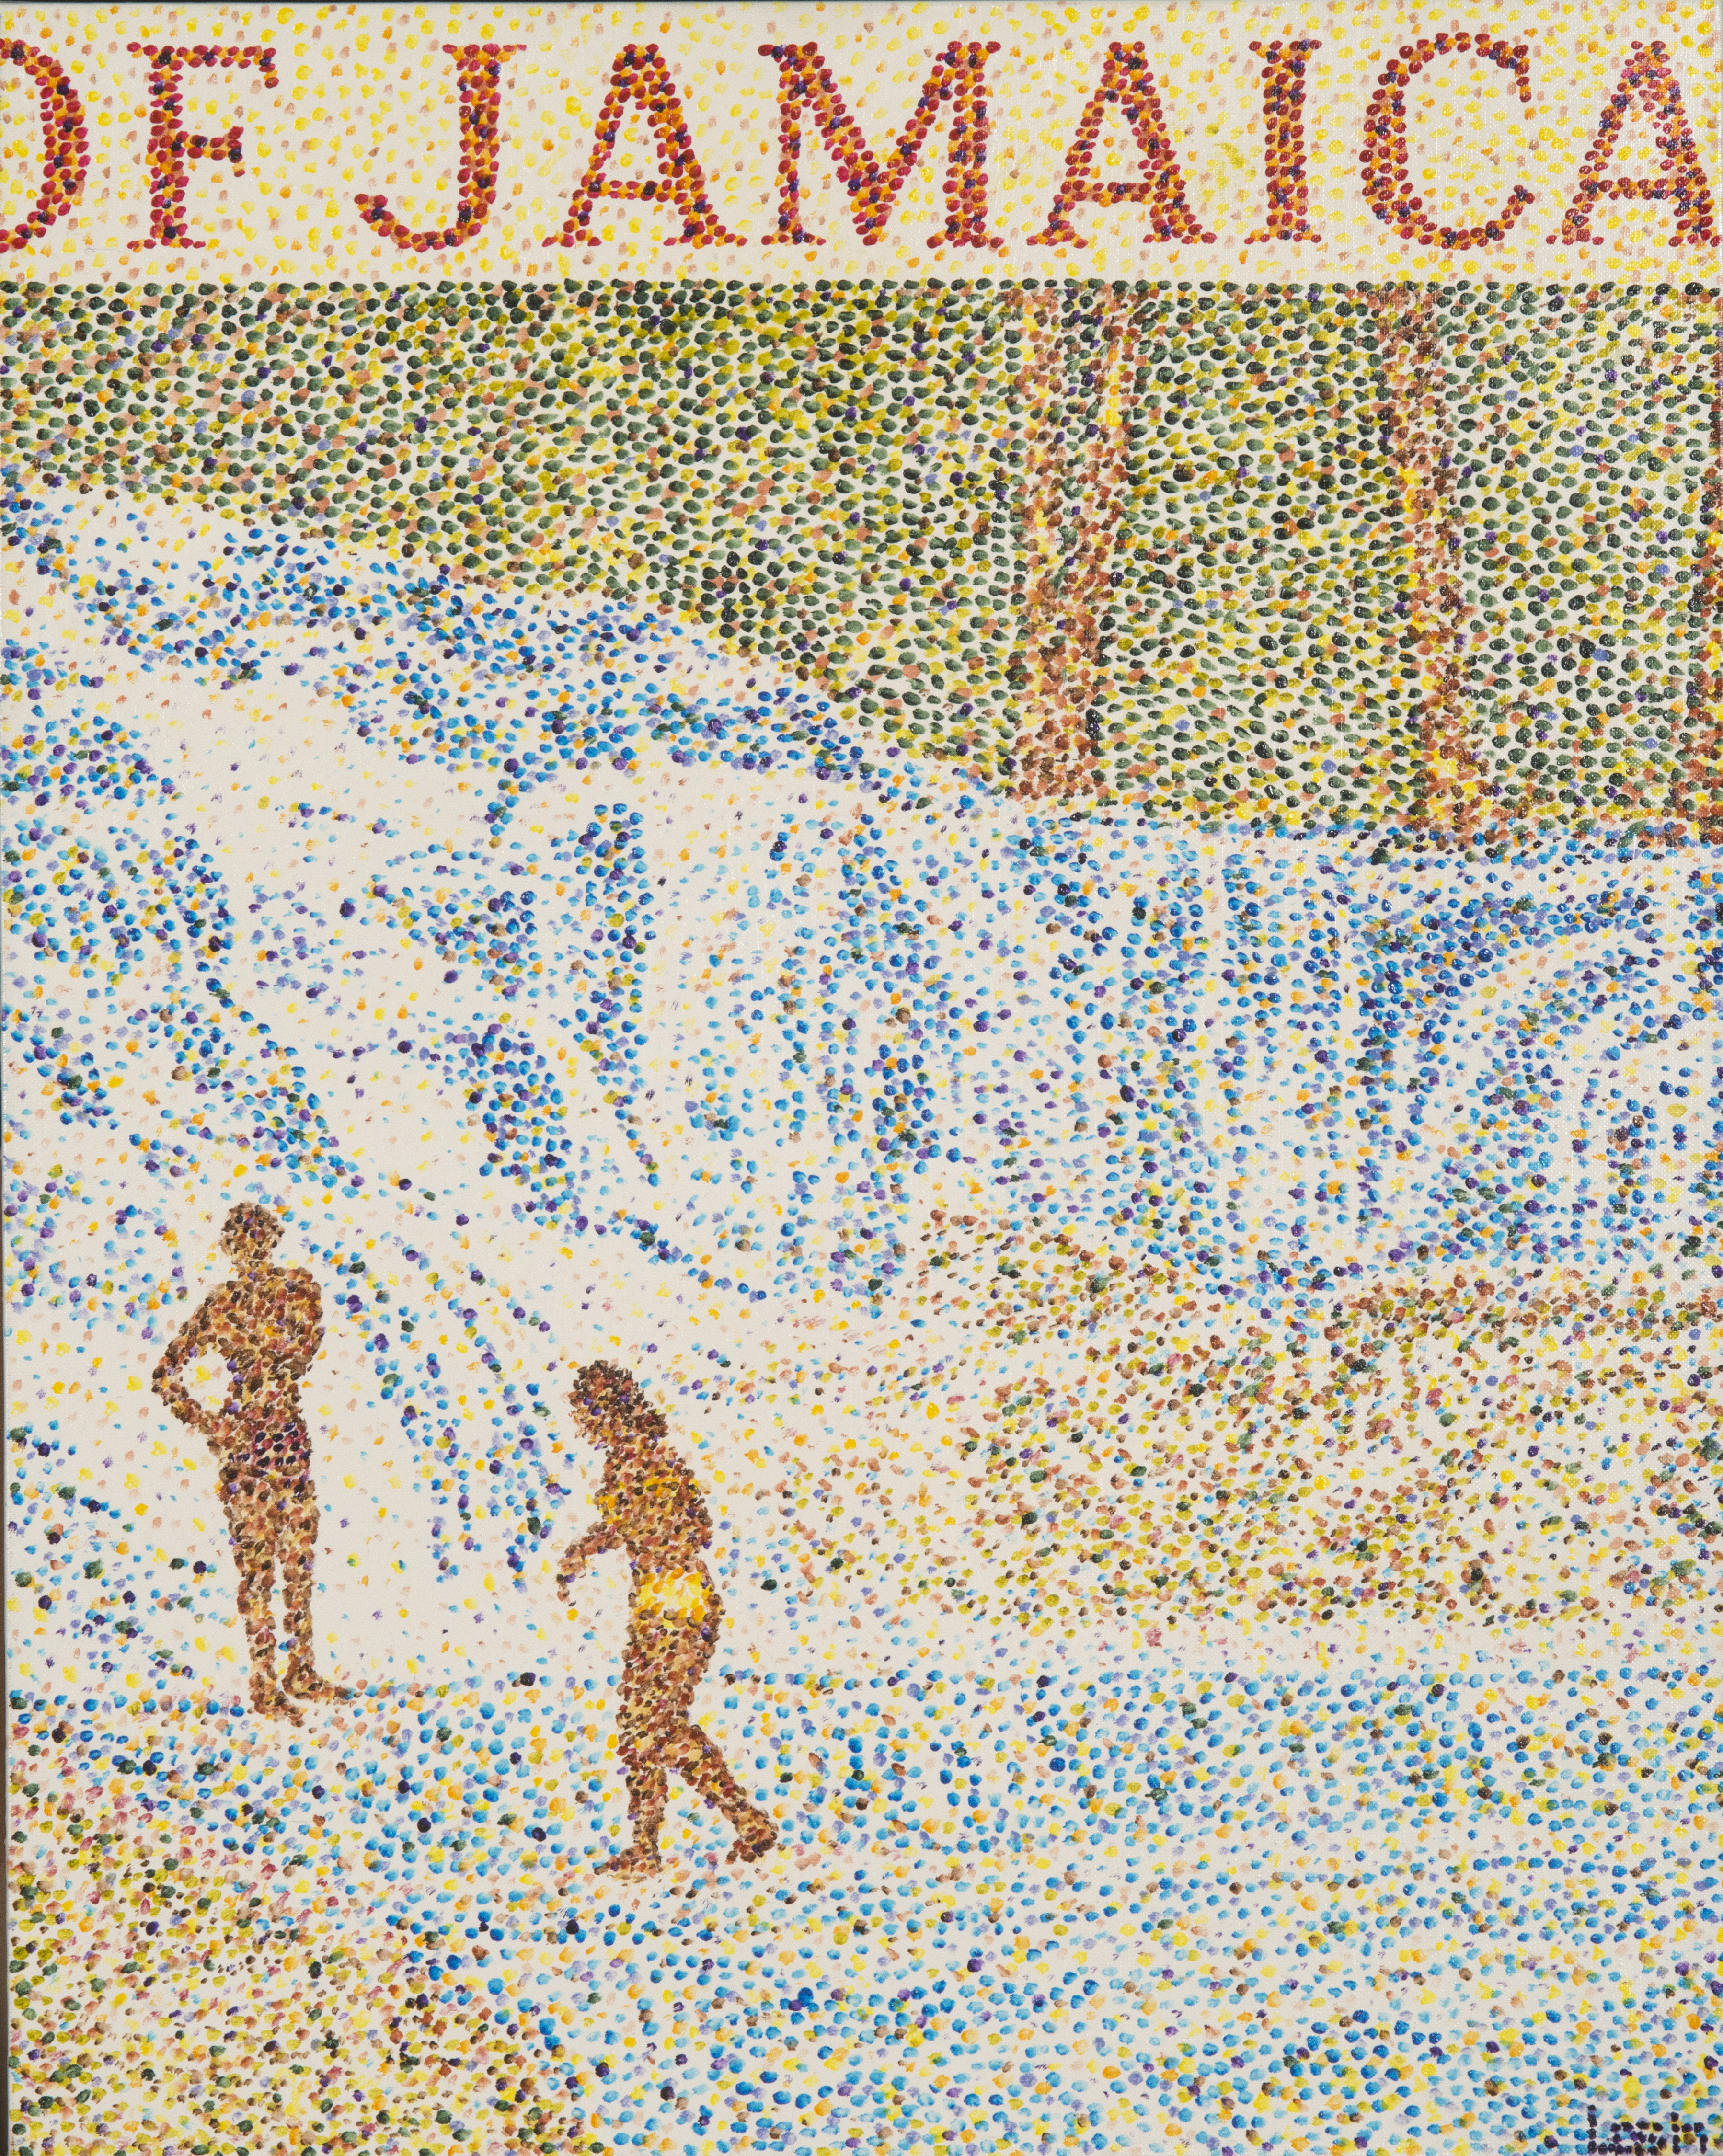 View Image Details Bathers